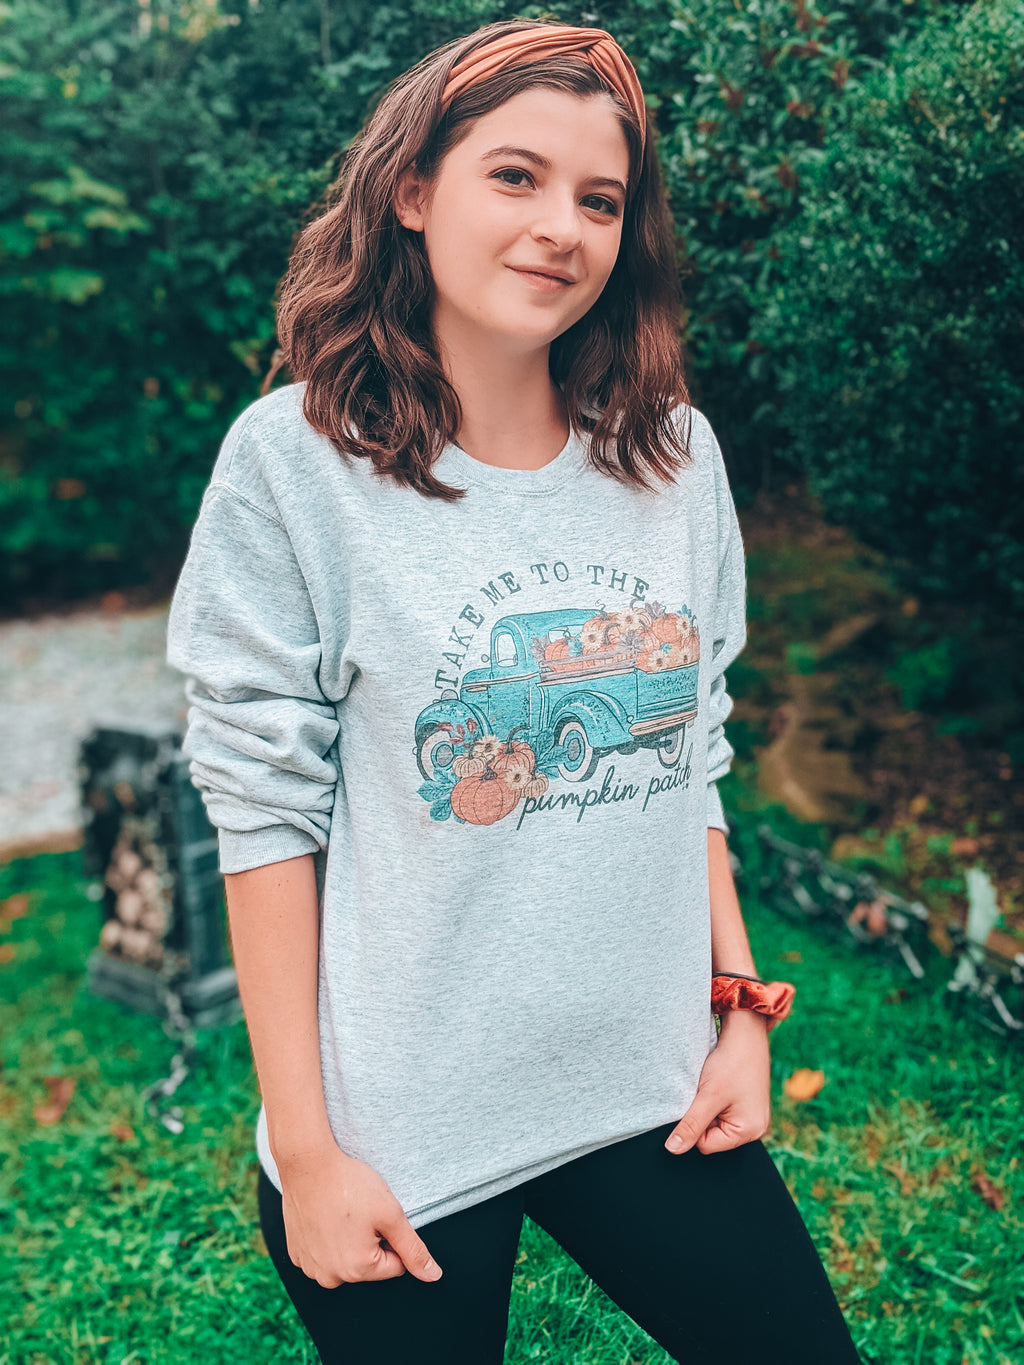 Take Me To The Pumpkin Patch Sweatshirt